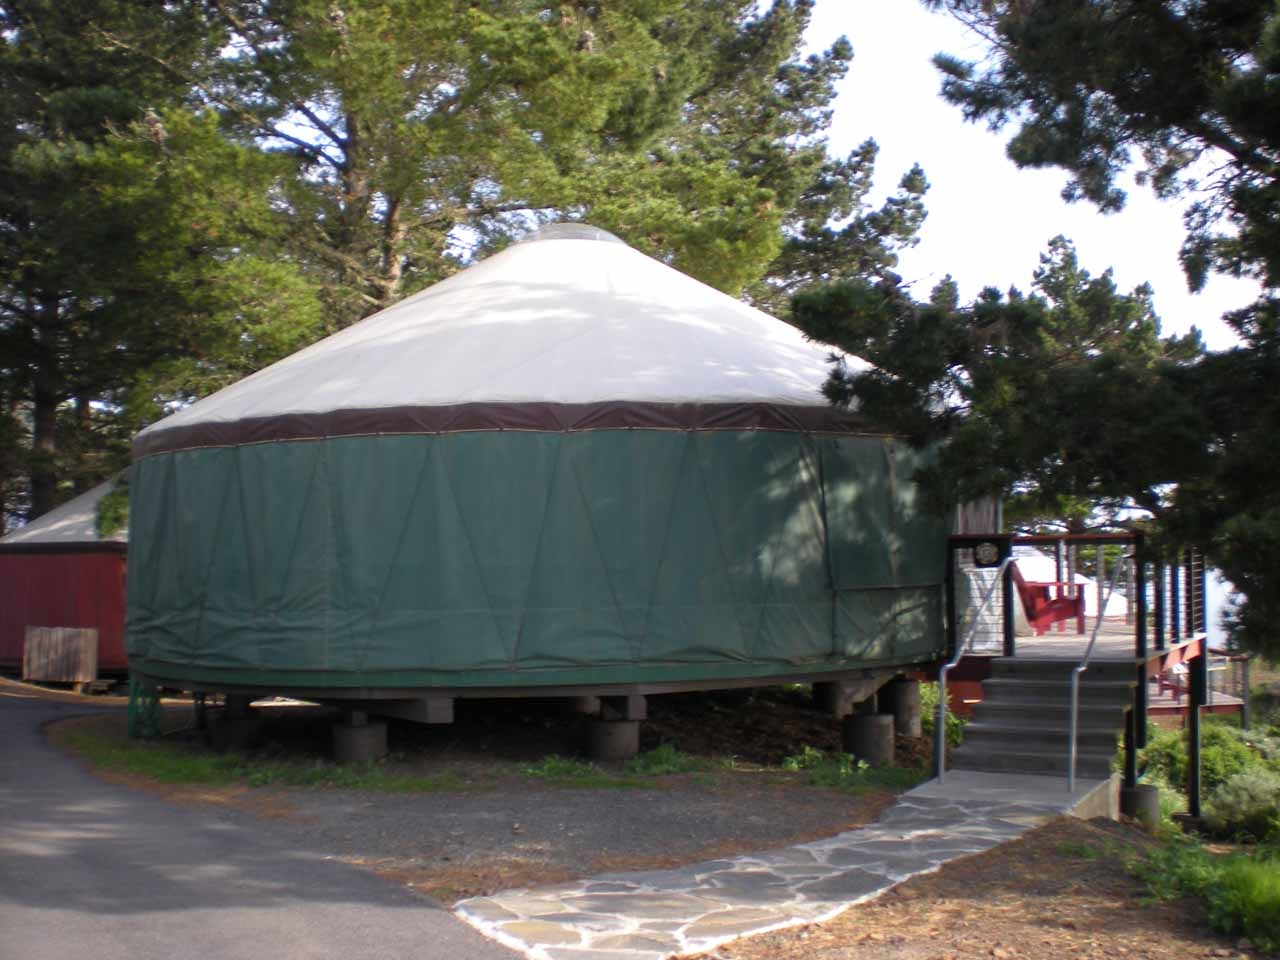 A yurt at Treebones